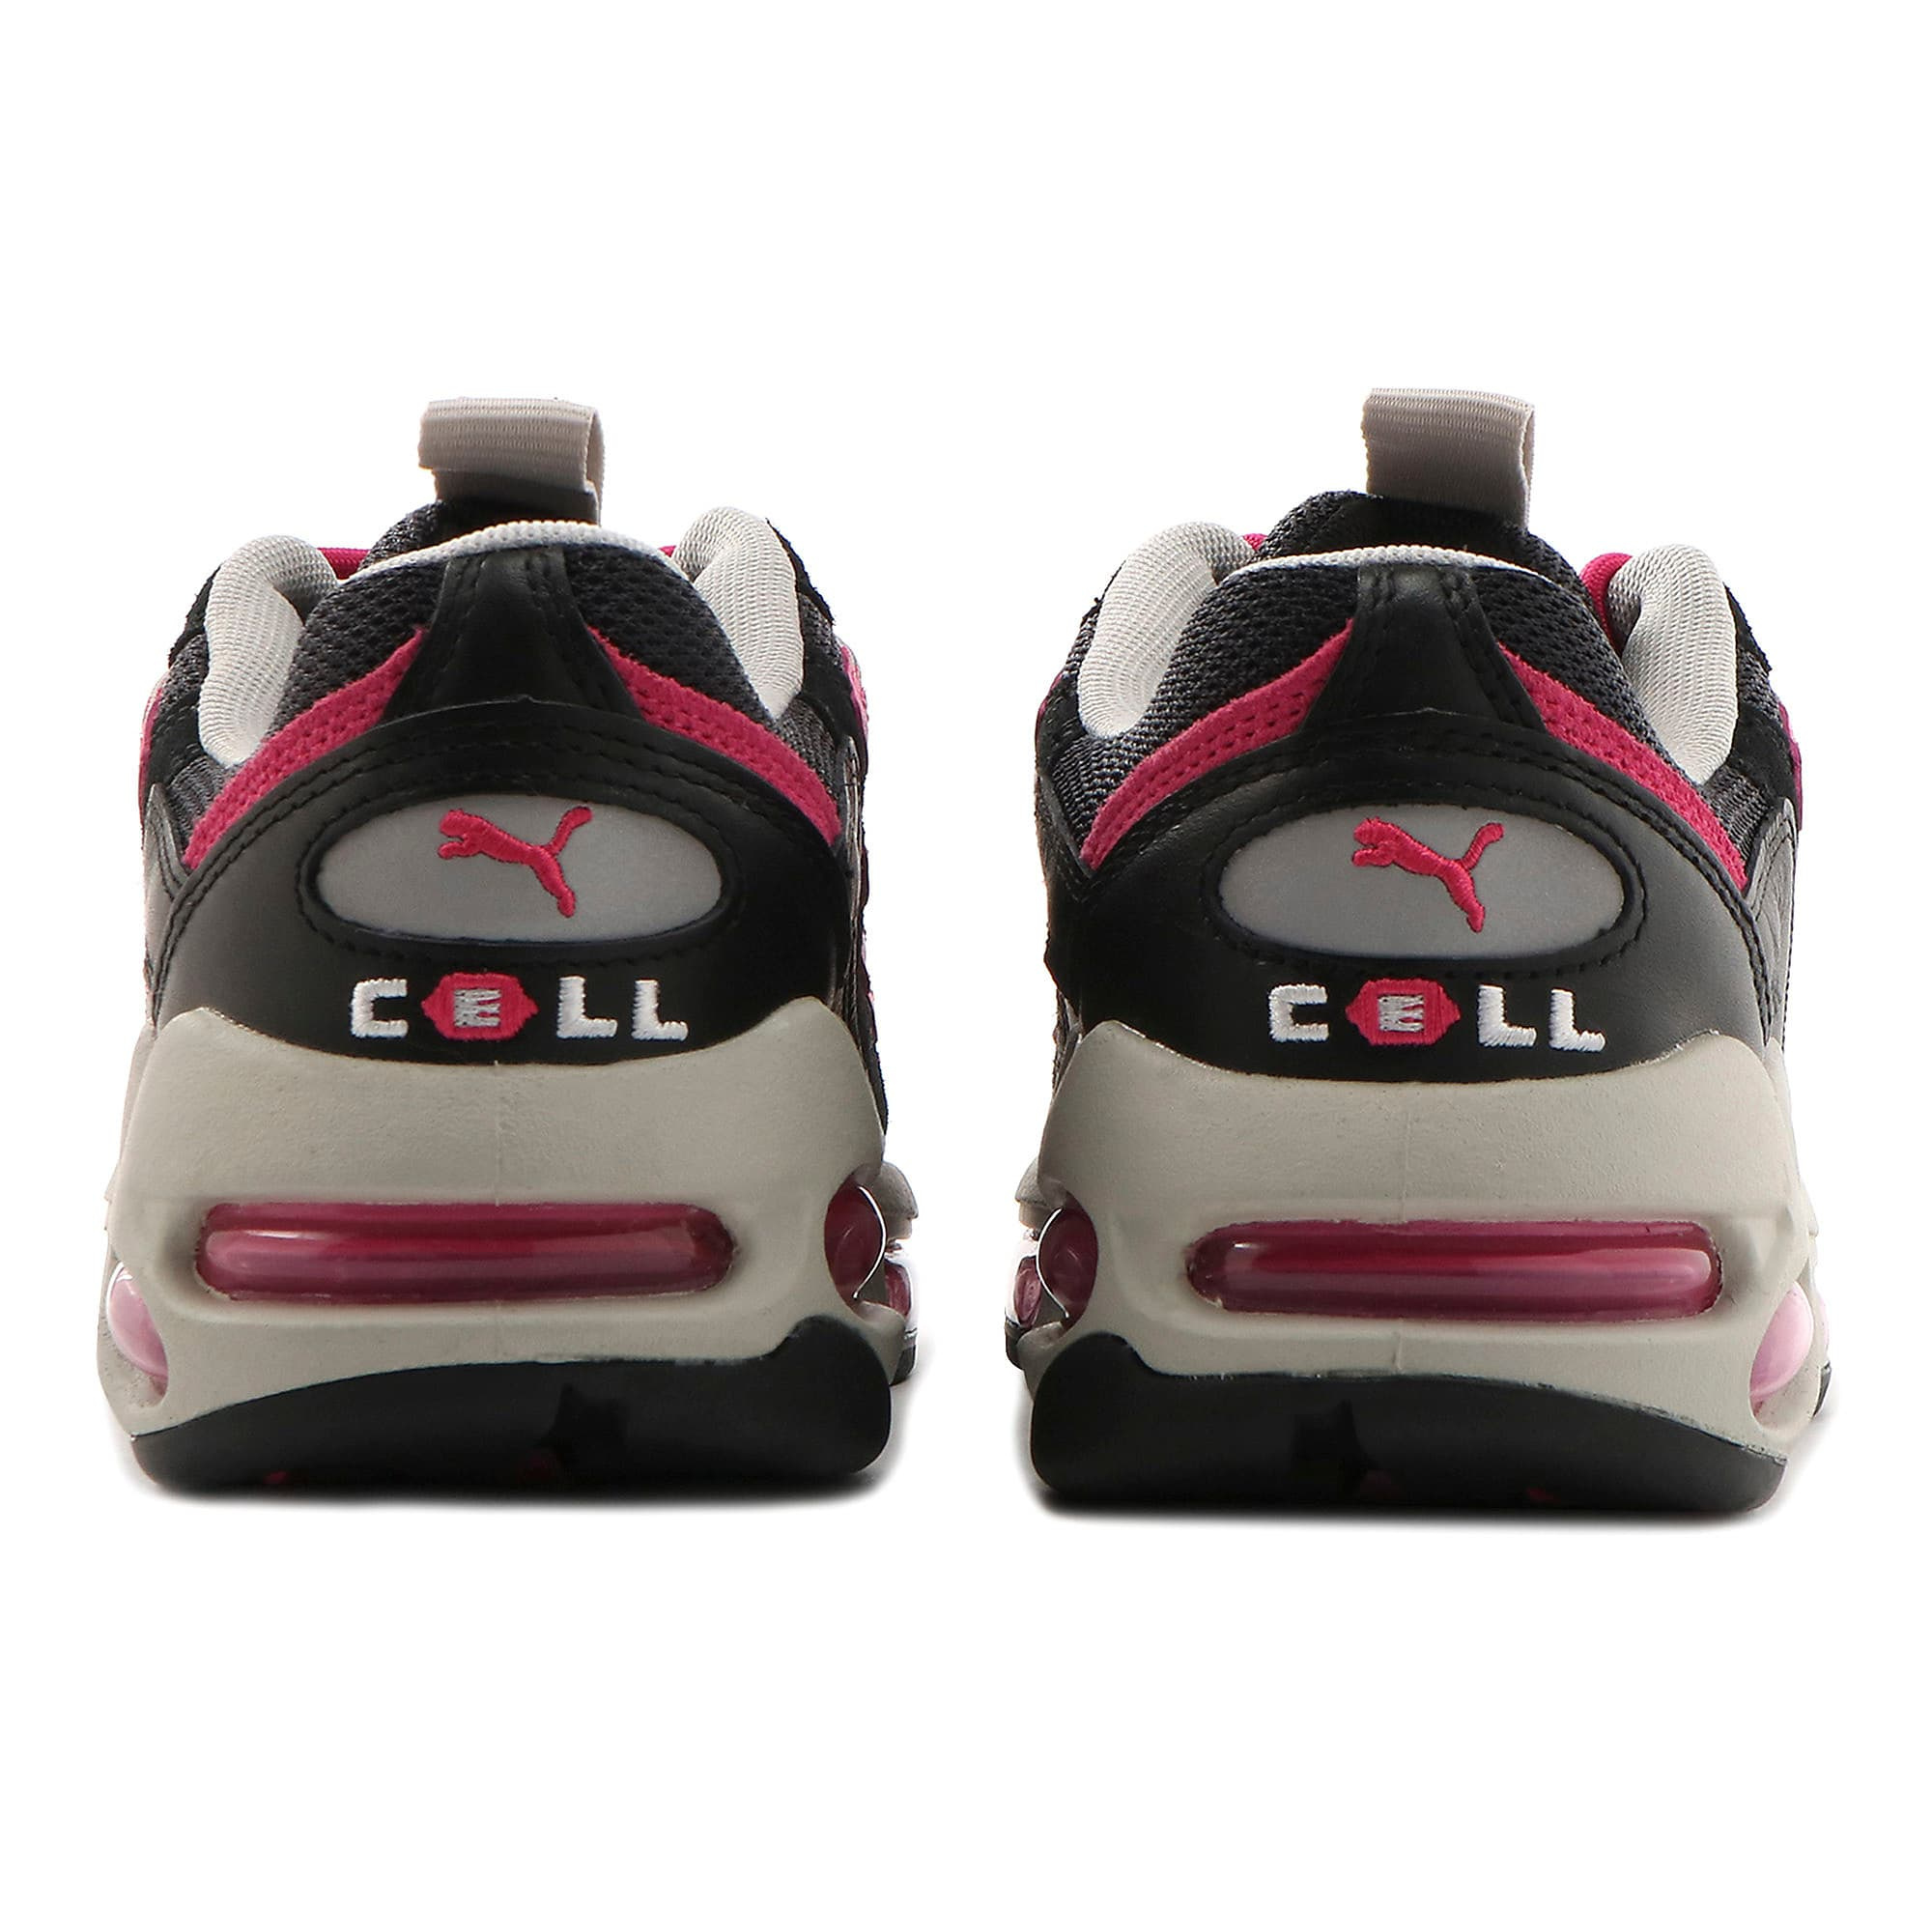 Thumbnail 3 of CELL ENDURA スニーカー, Puma Black-Fuchsia Purple, medium-JPN